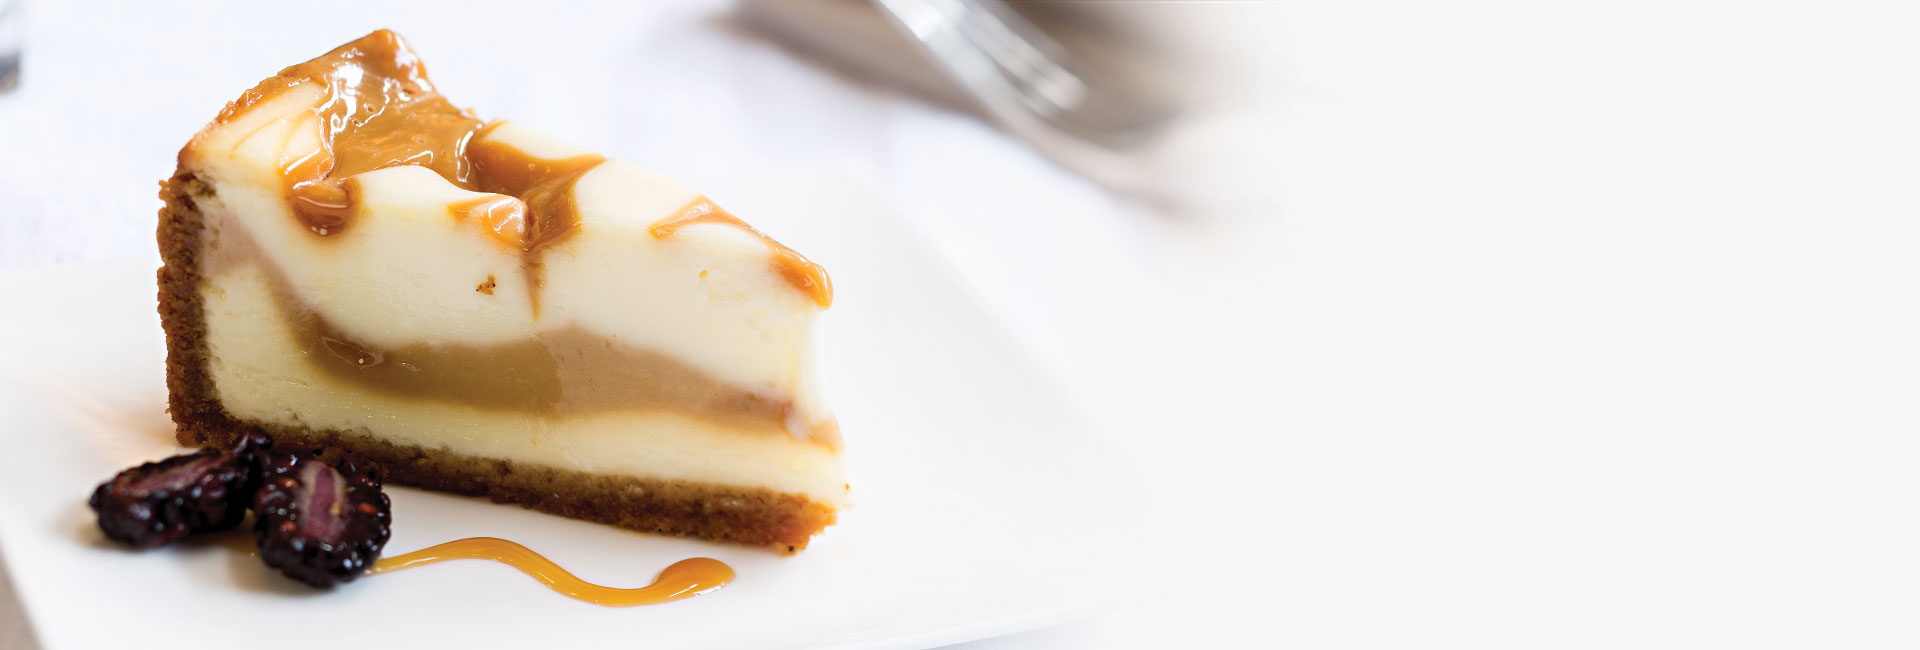 A slice of caramel cheesecake on a brown crust served on a white plate with a sliced blackberry and topped with caramel drizzle.